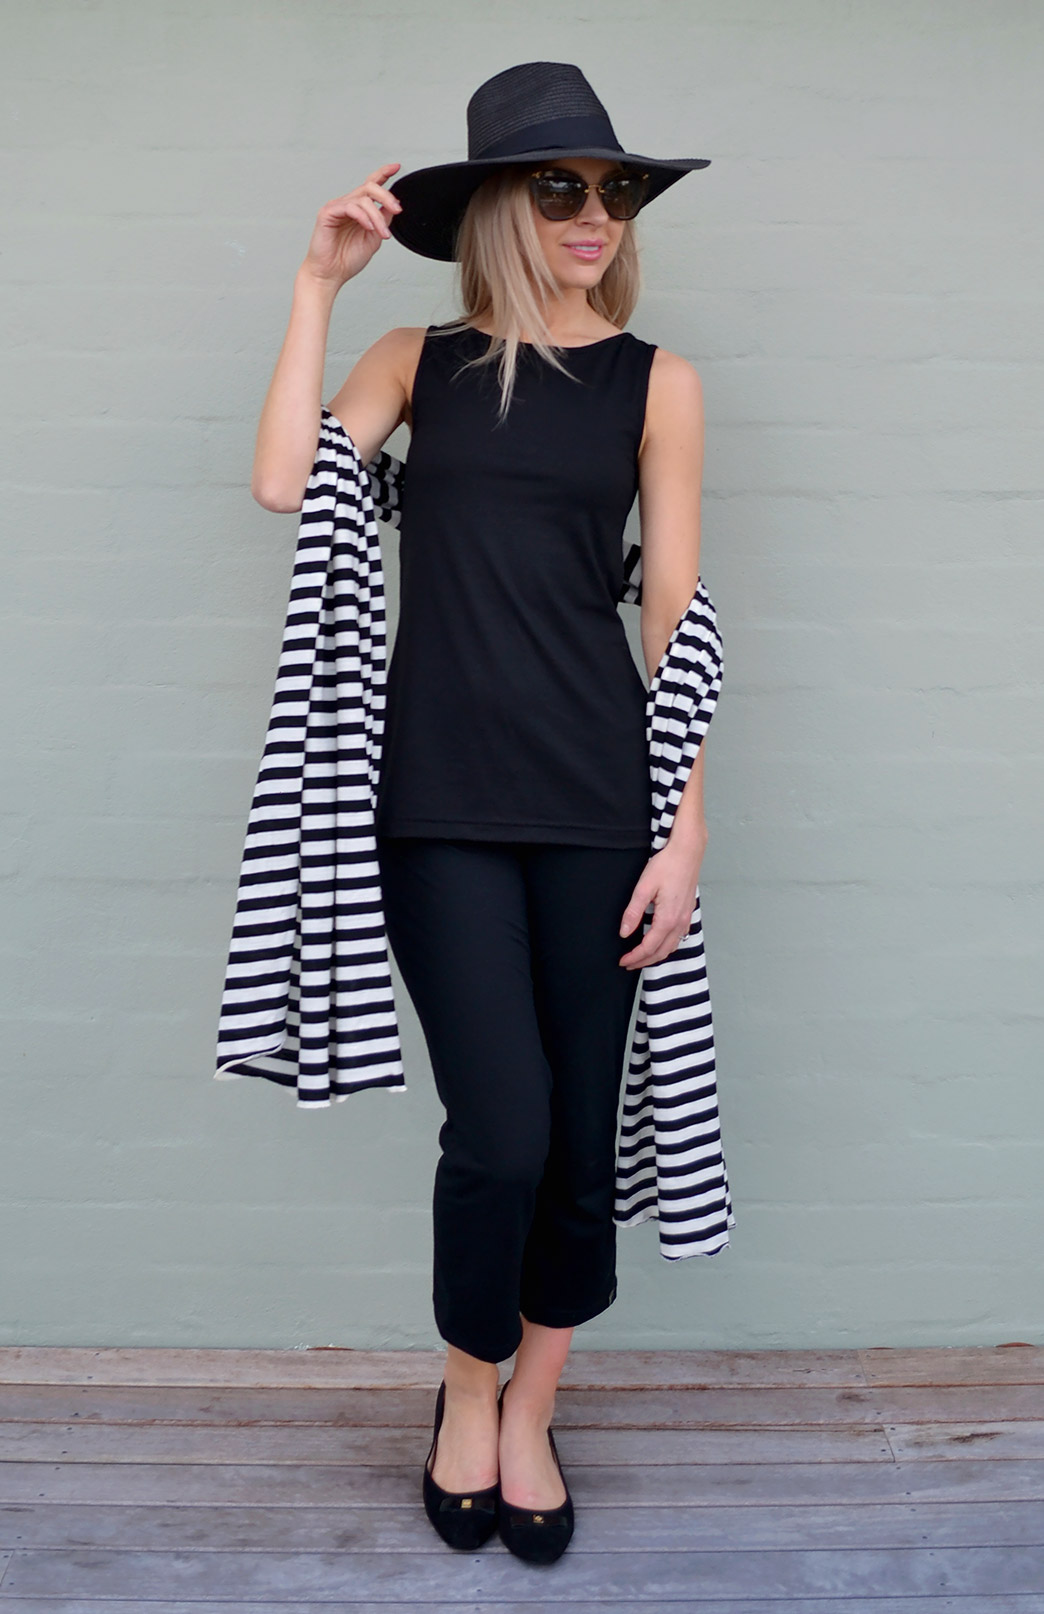 Capri Top - Women's Black Merino Sleeveless Summer Top - Smitten Merino Tasmania Australia